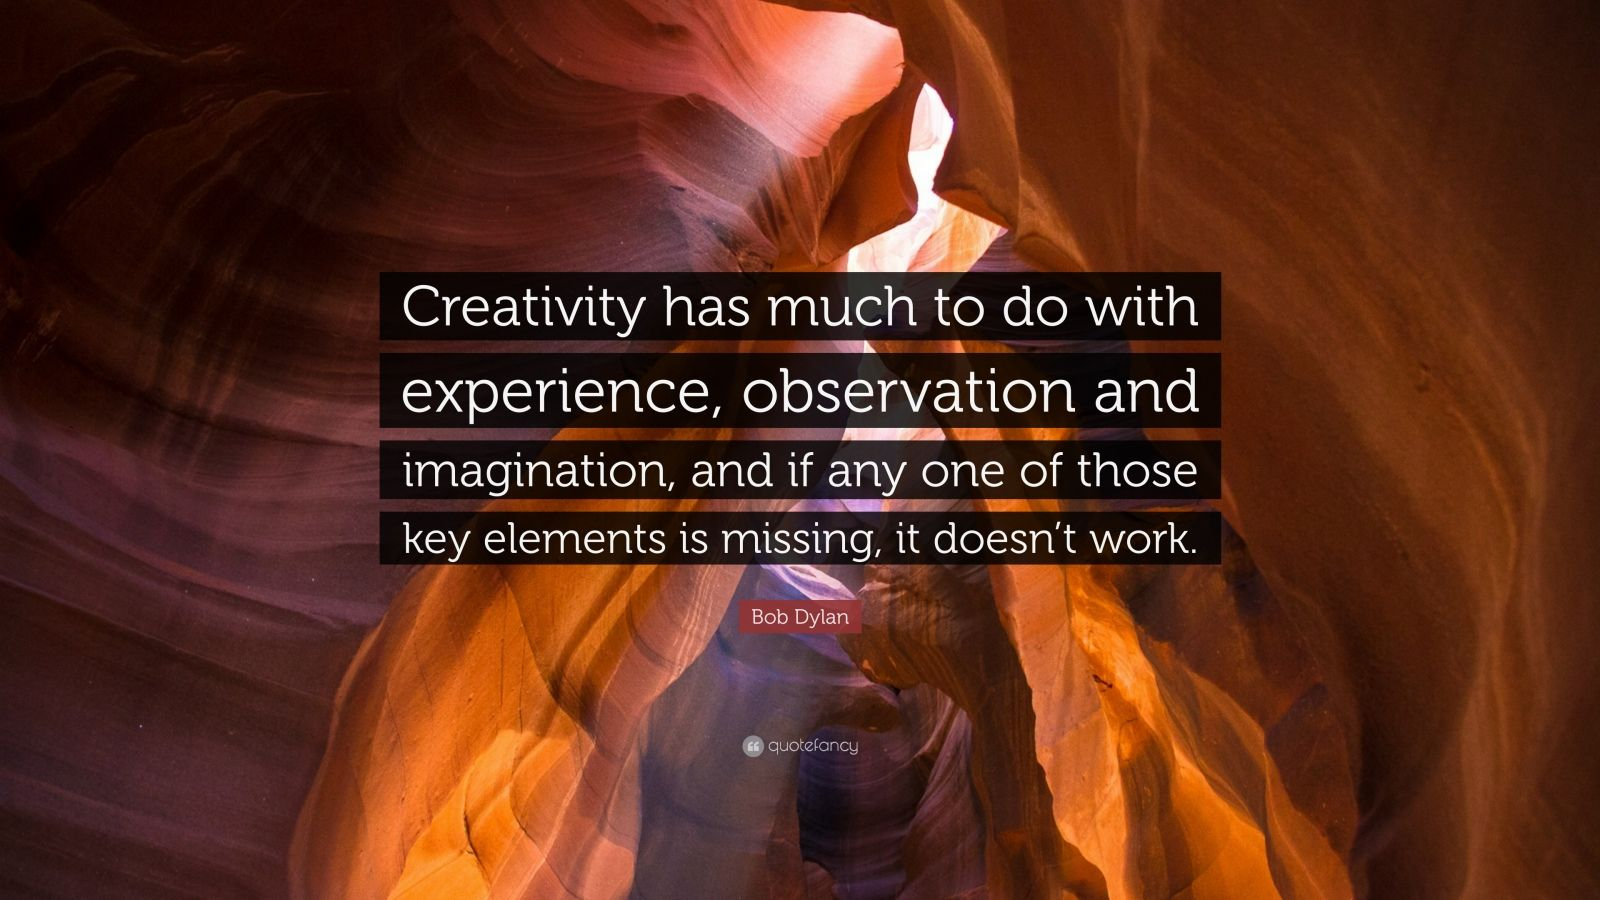 """Bob Dylan Quote: """"Creativity has much to do with experience, observation and imagination, and if any one of those key elements is missing, it doesn't work."""""""